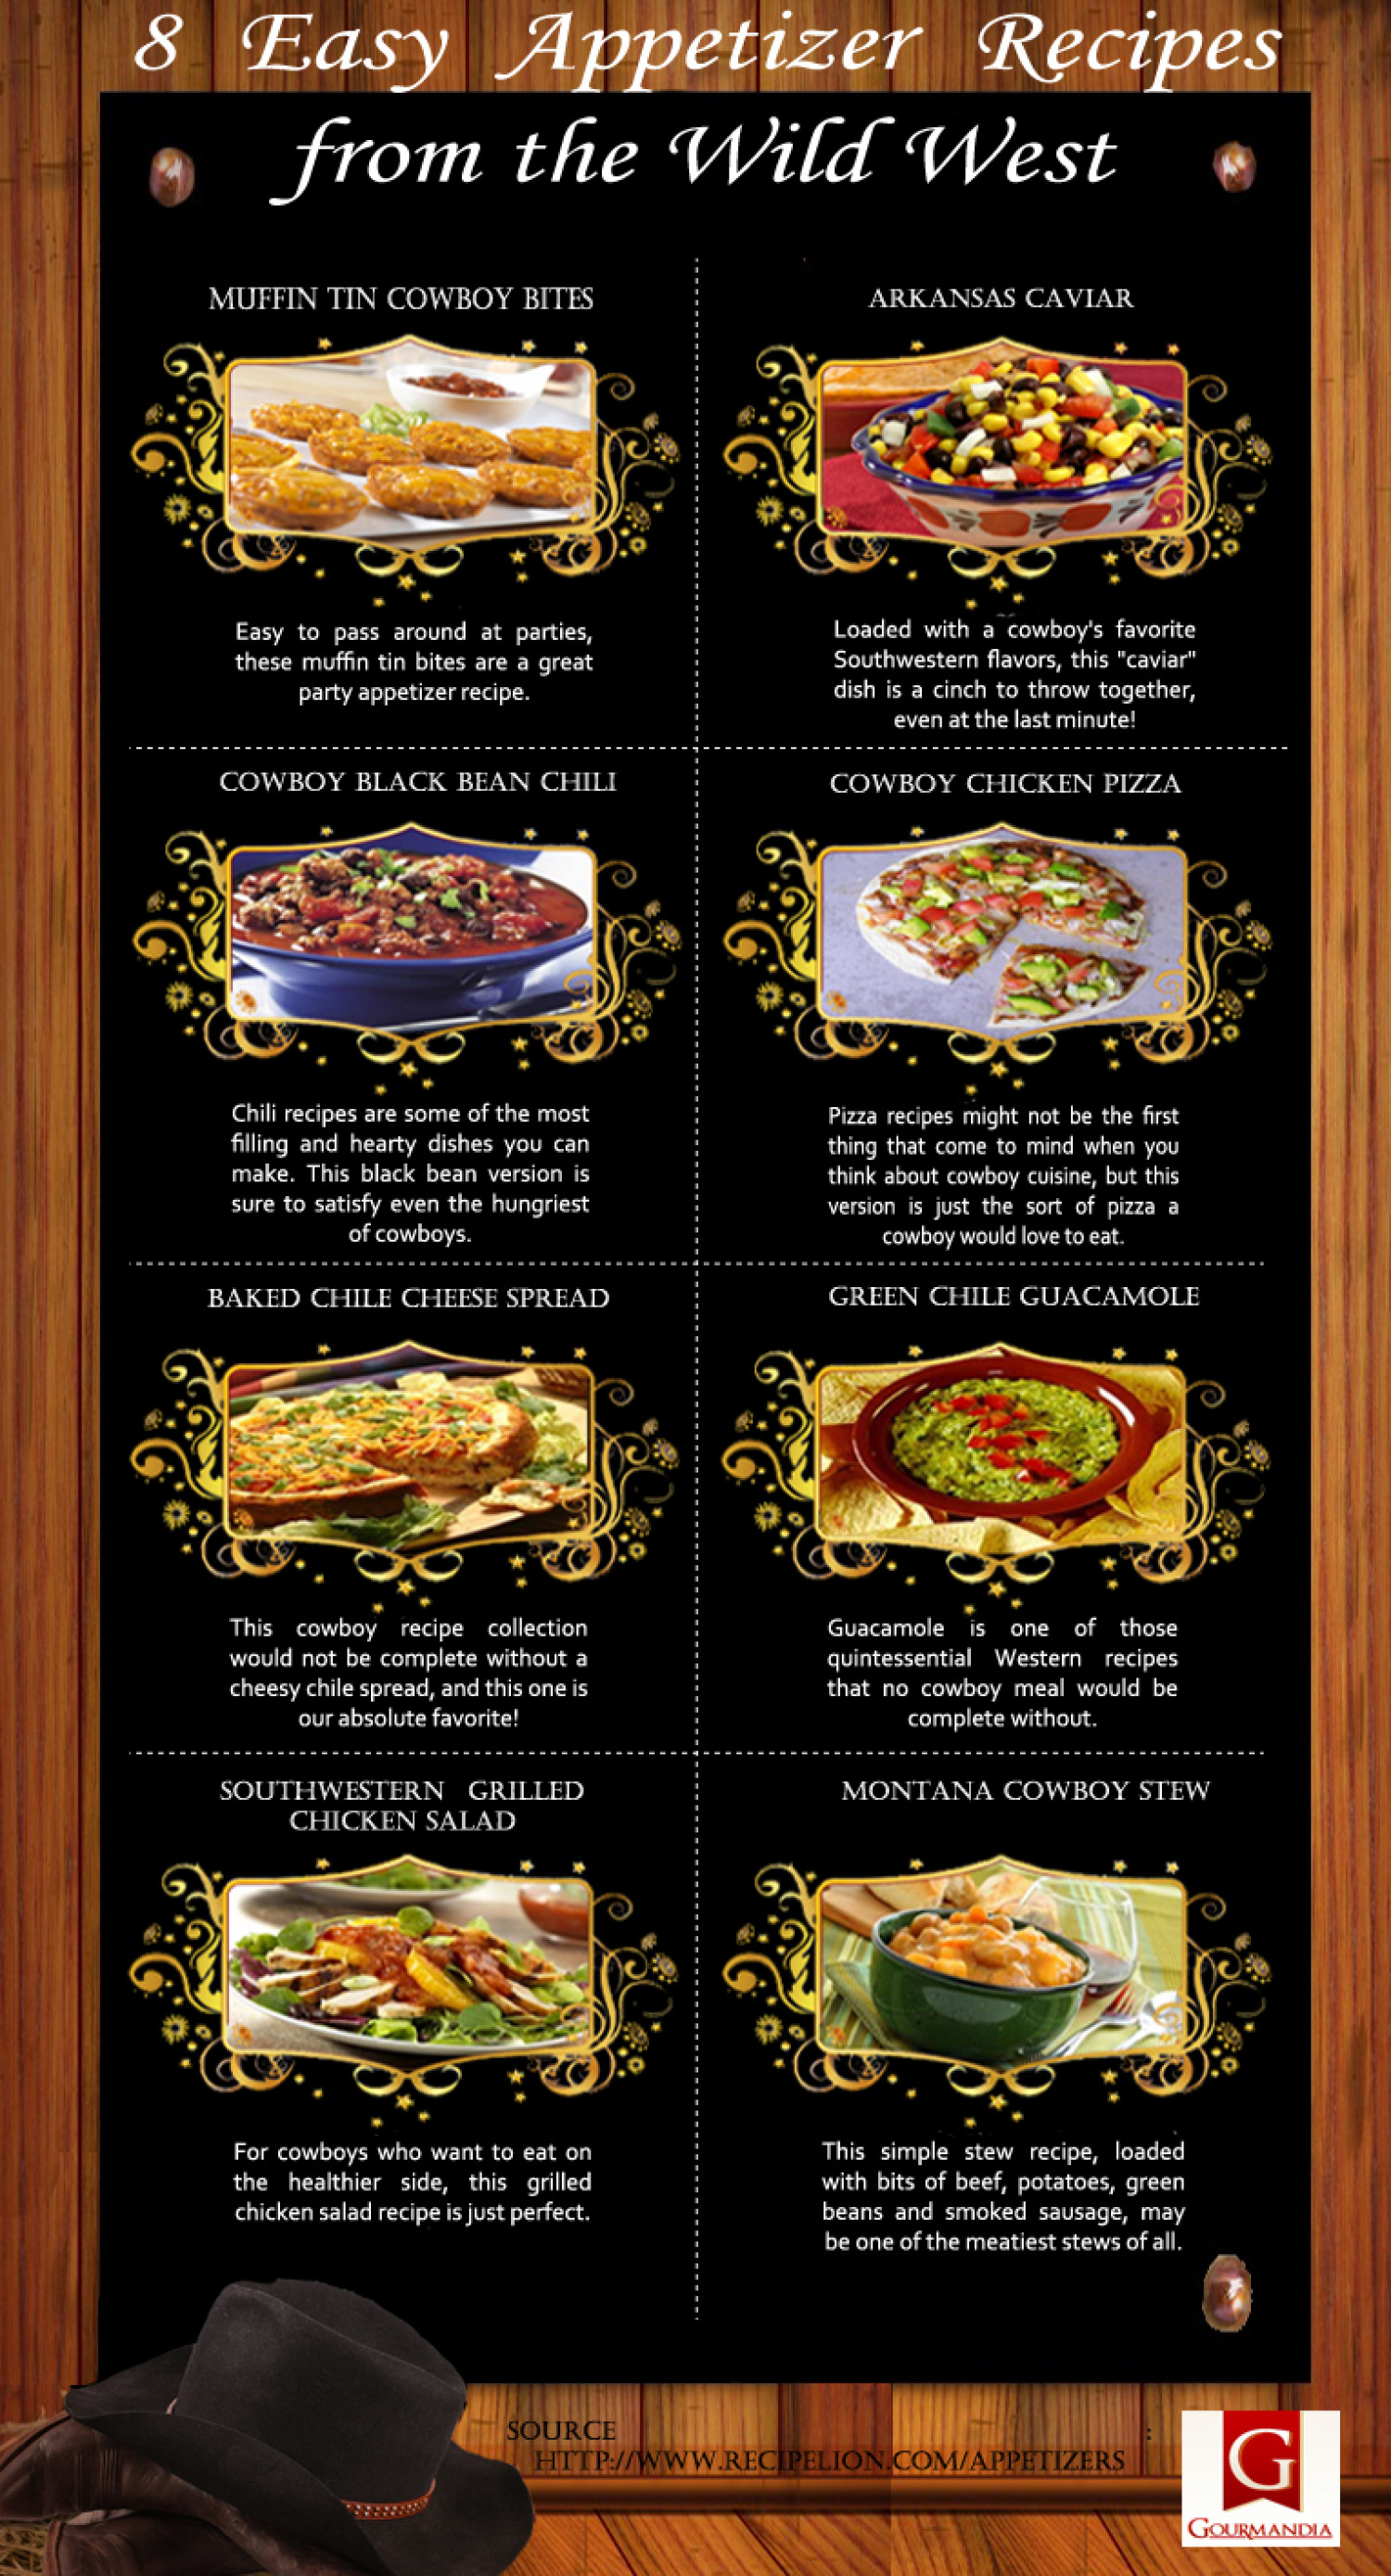 8 Easy Appetizer Recipes from the Wild West Infographic